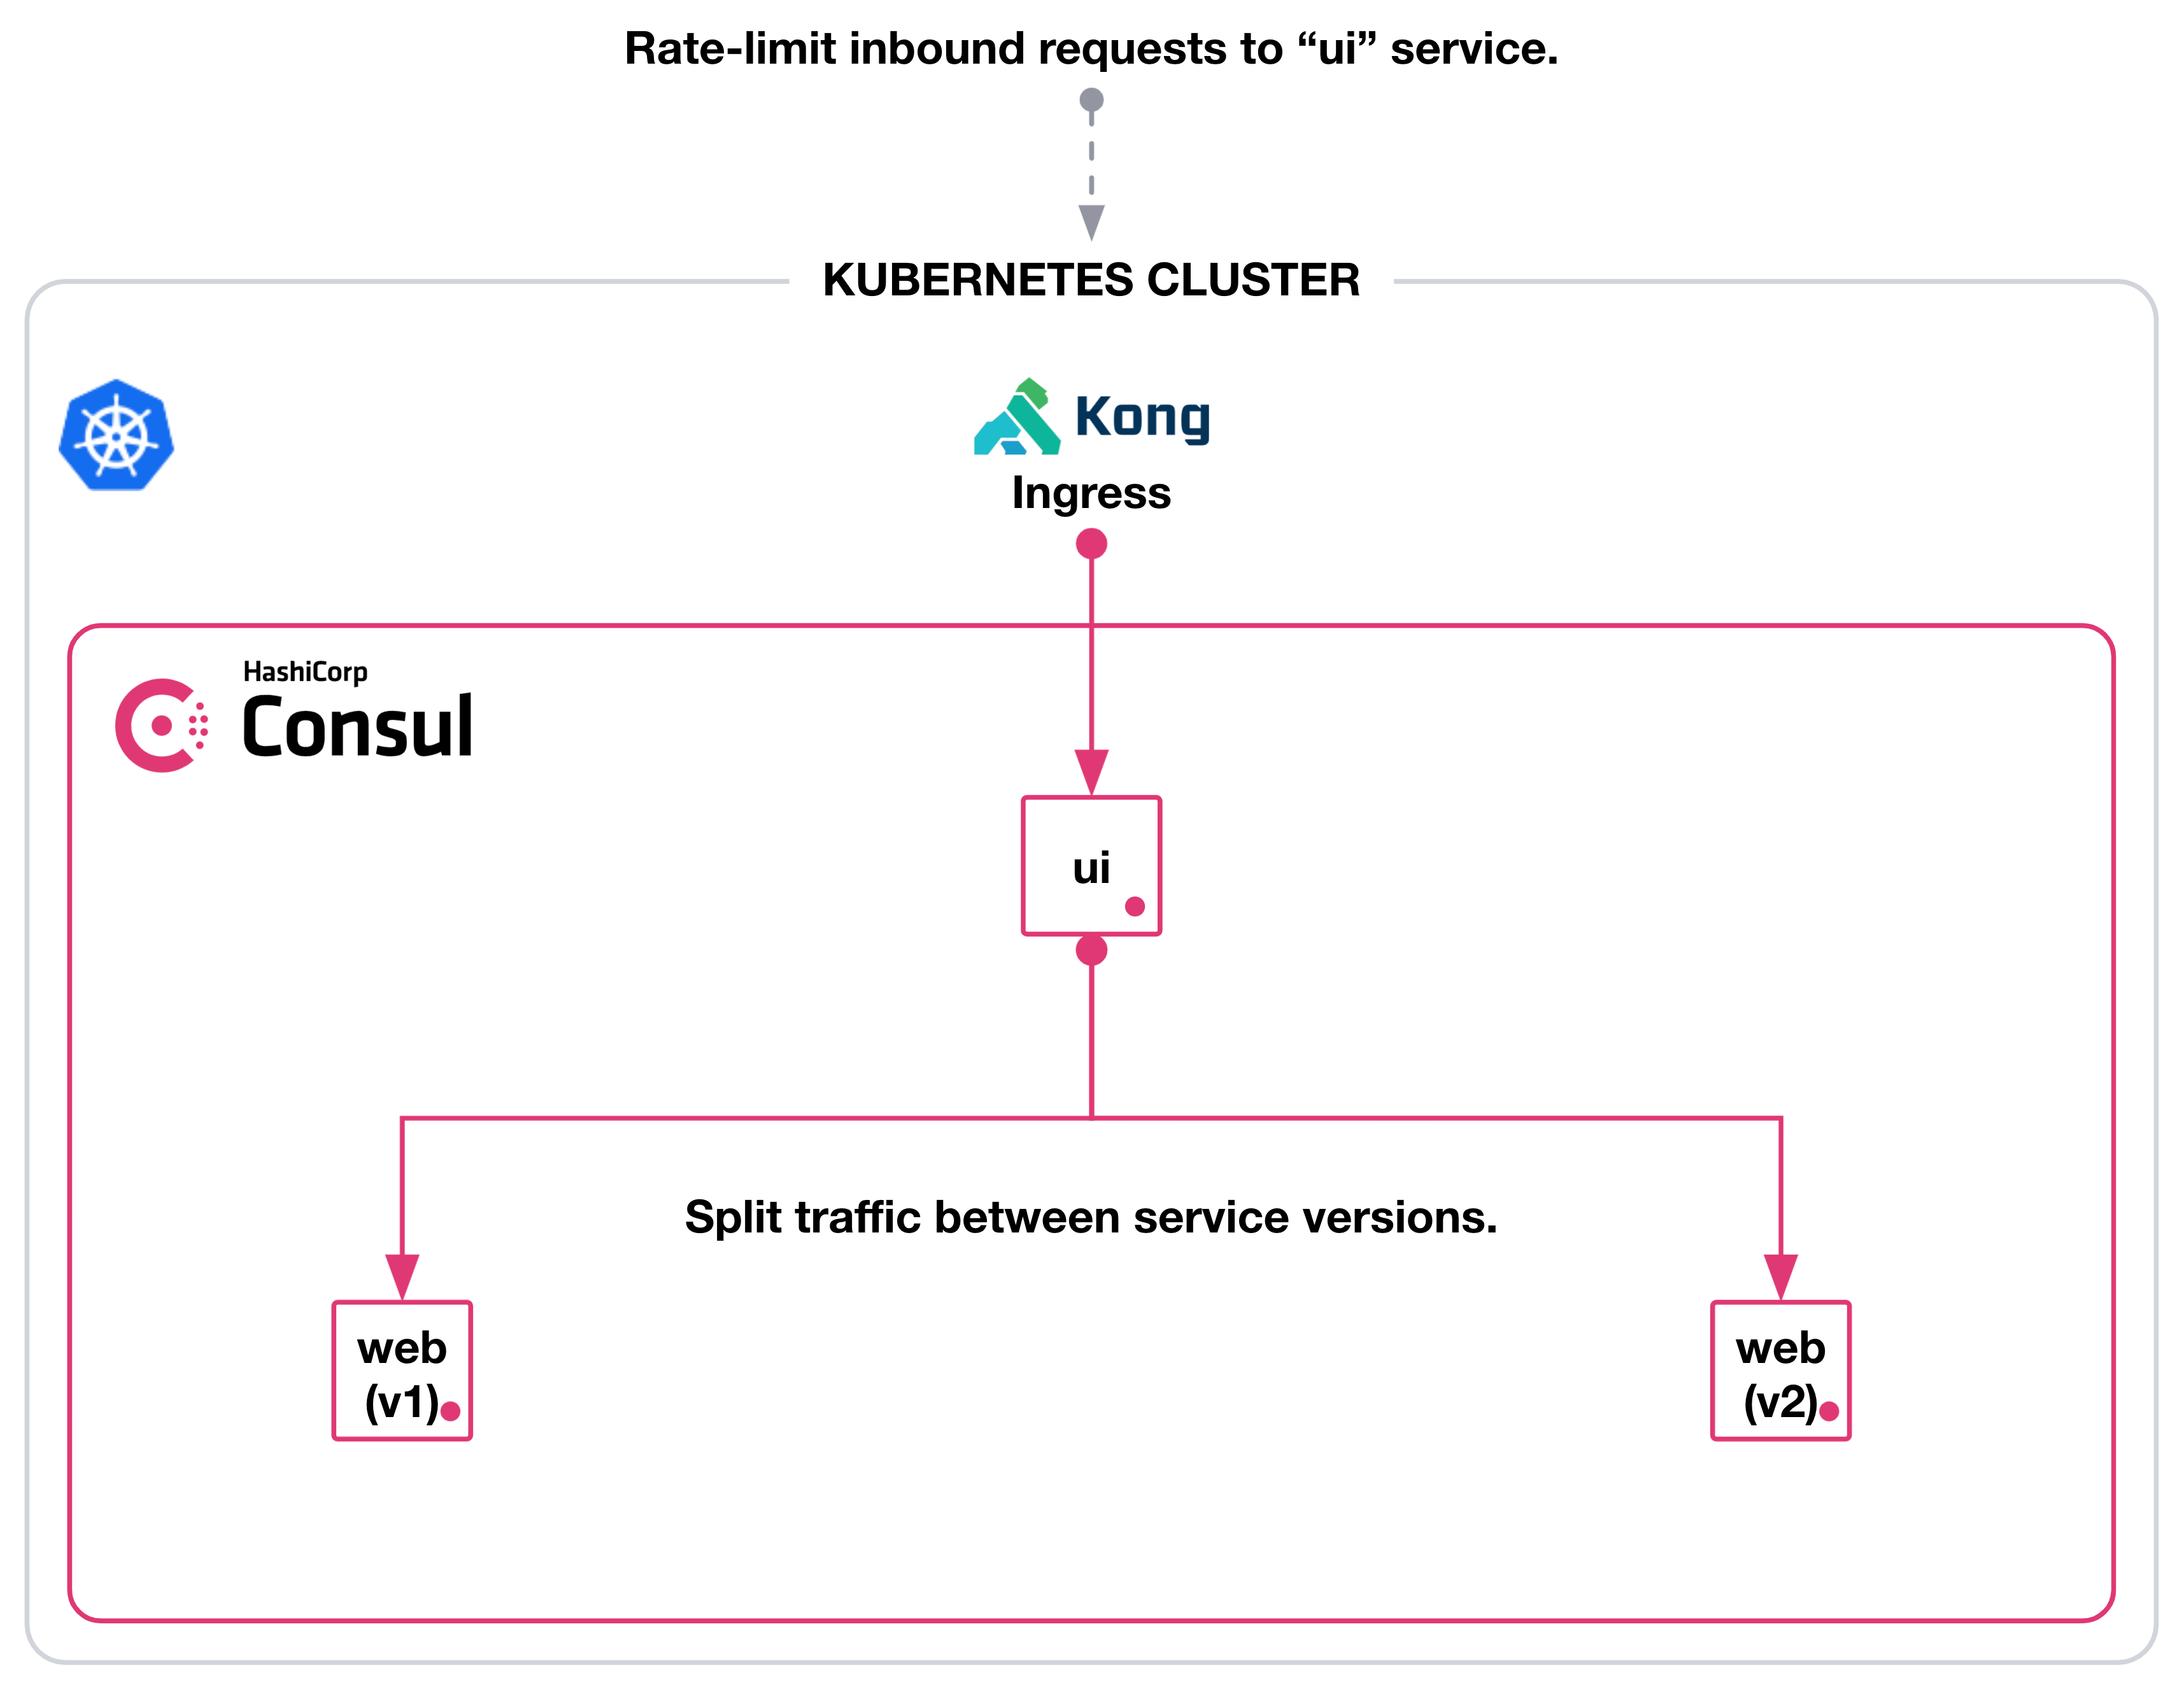 Architecture diagram of Kong ingress rate-limiting inbound requests to `ui` and Consul service mesh splitting traffic between two versions of web in a Kubernetes cluster.